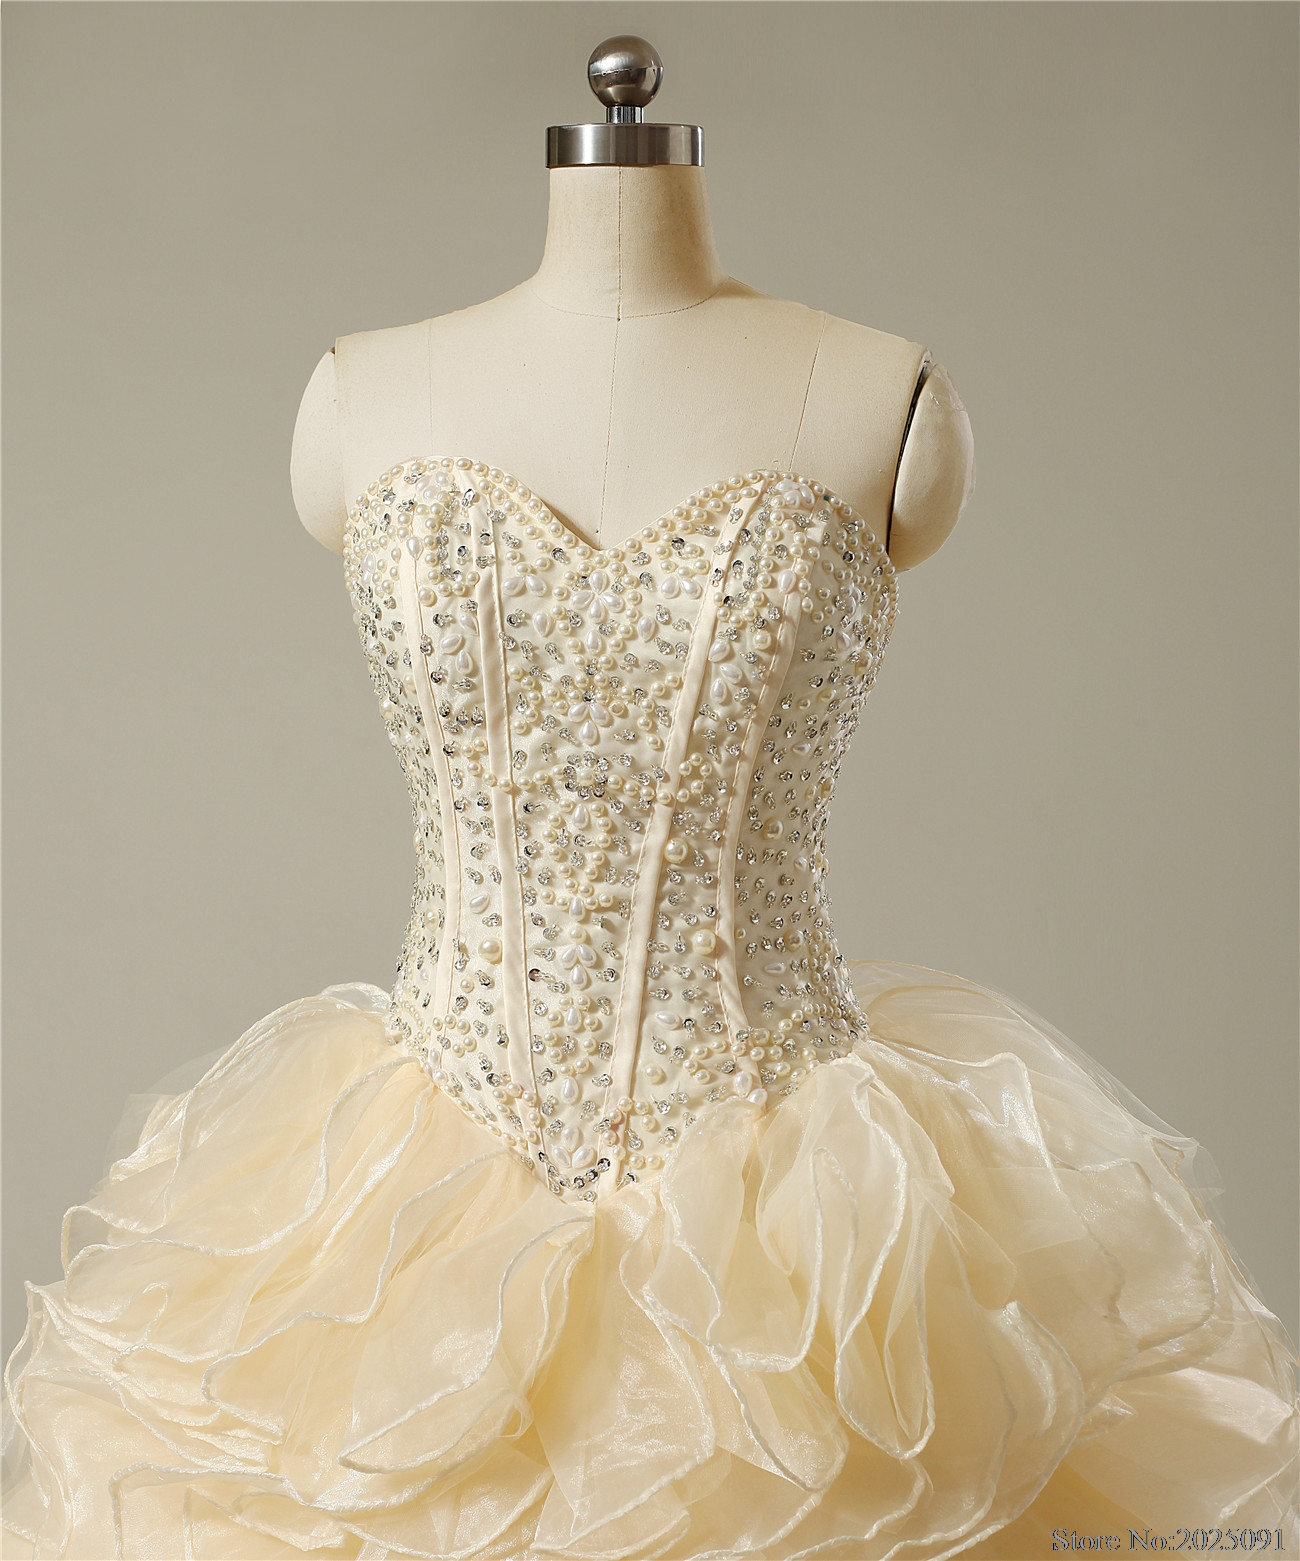 New Sweetheart Champagne Quinceanera Dresses 2017 Ball Gown with Pearls Crystal Cheap Quinceanera Gowns Long Prom dress